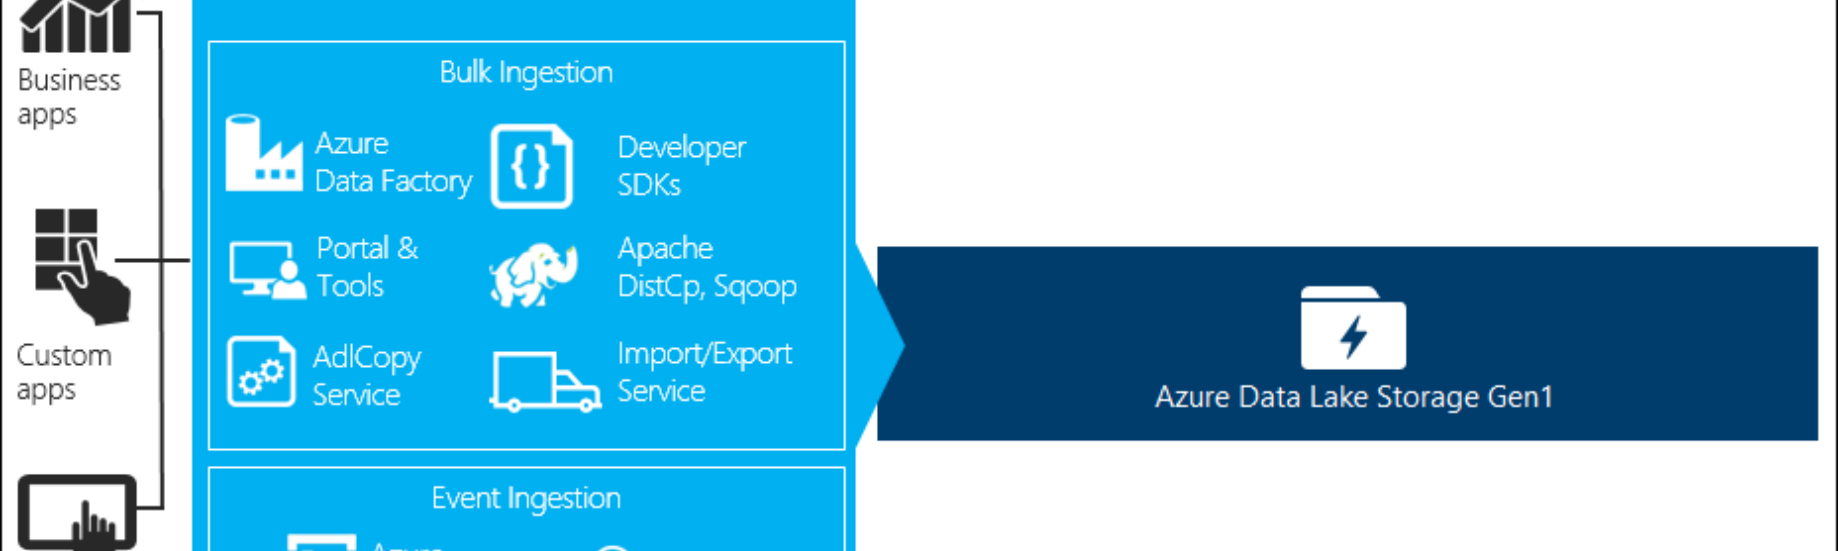 How to connect Azure Data Factory to Data Lake Storage (Gen1) — Part 1/2